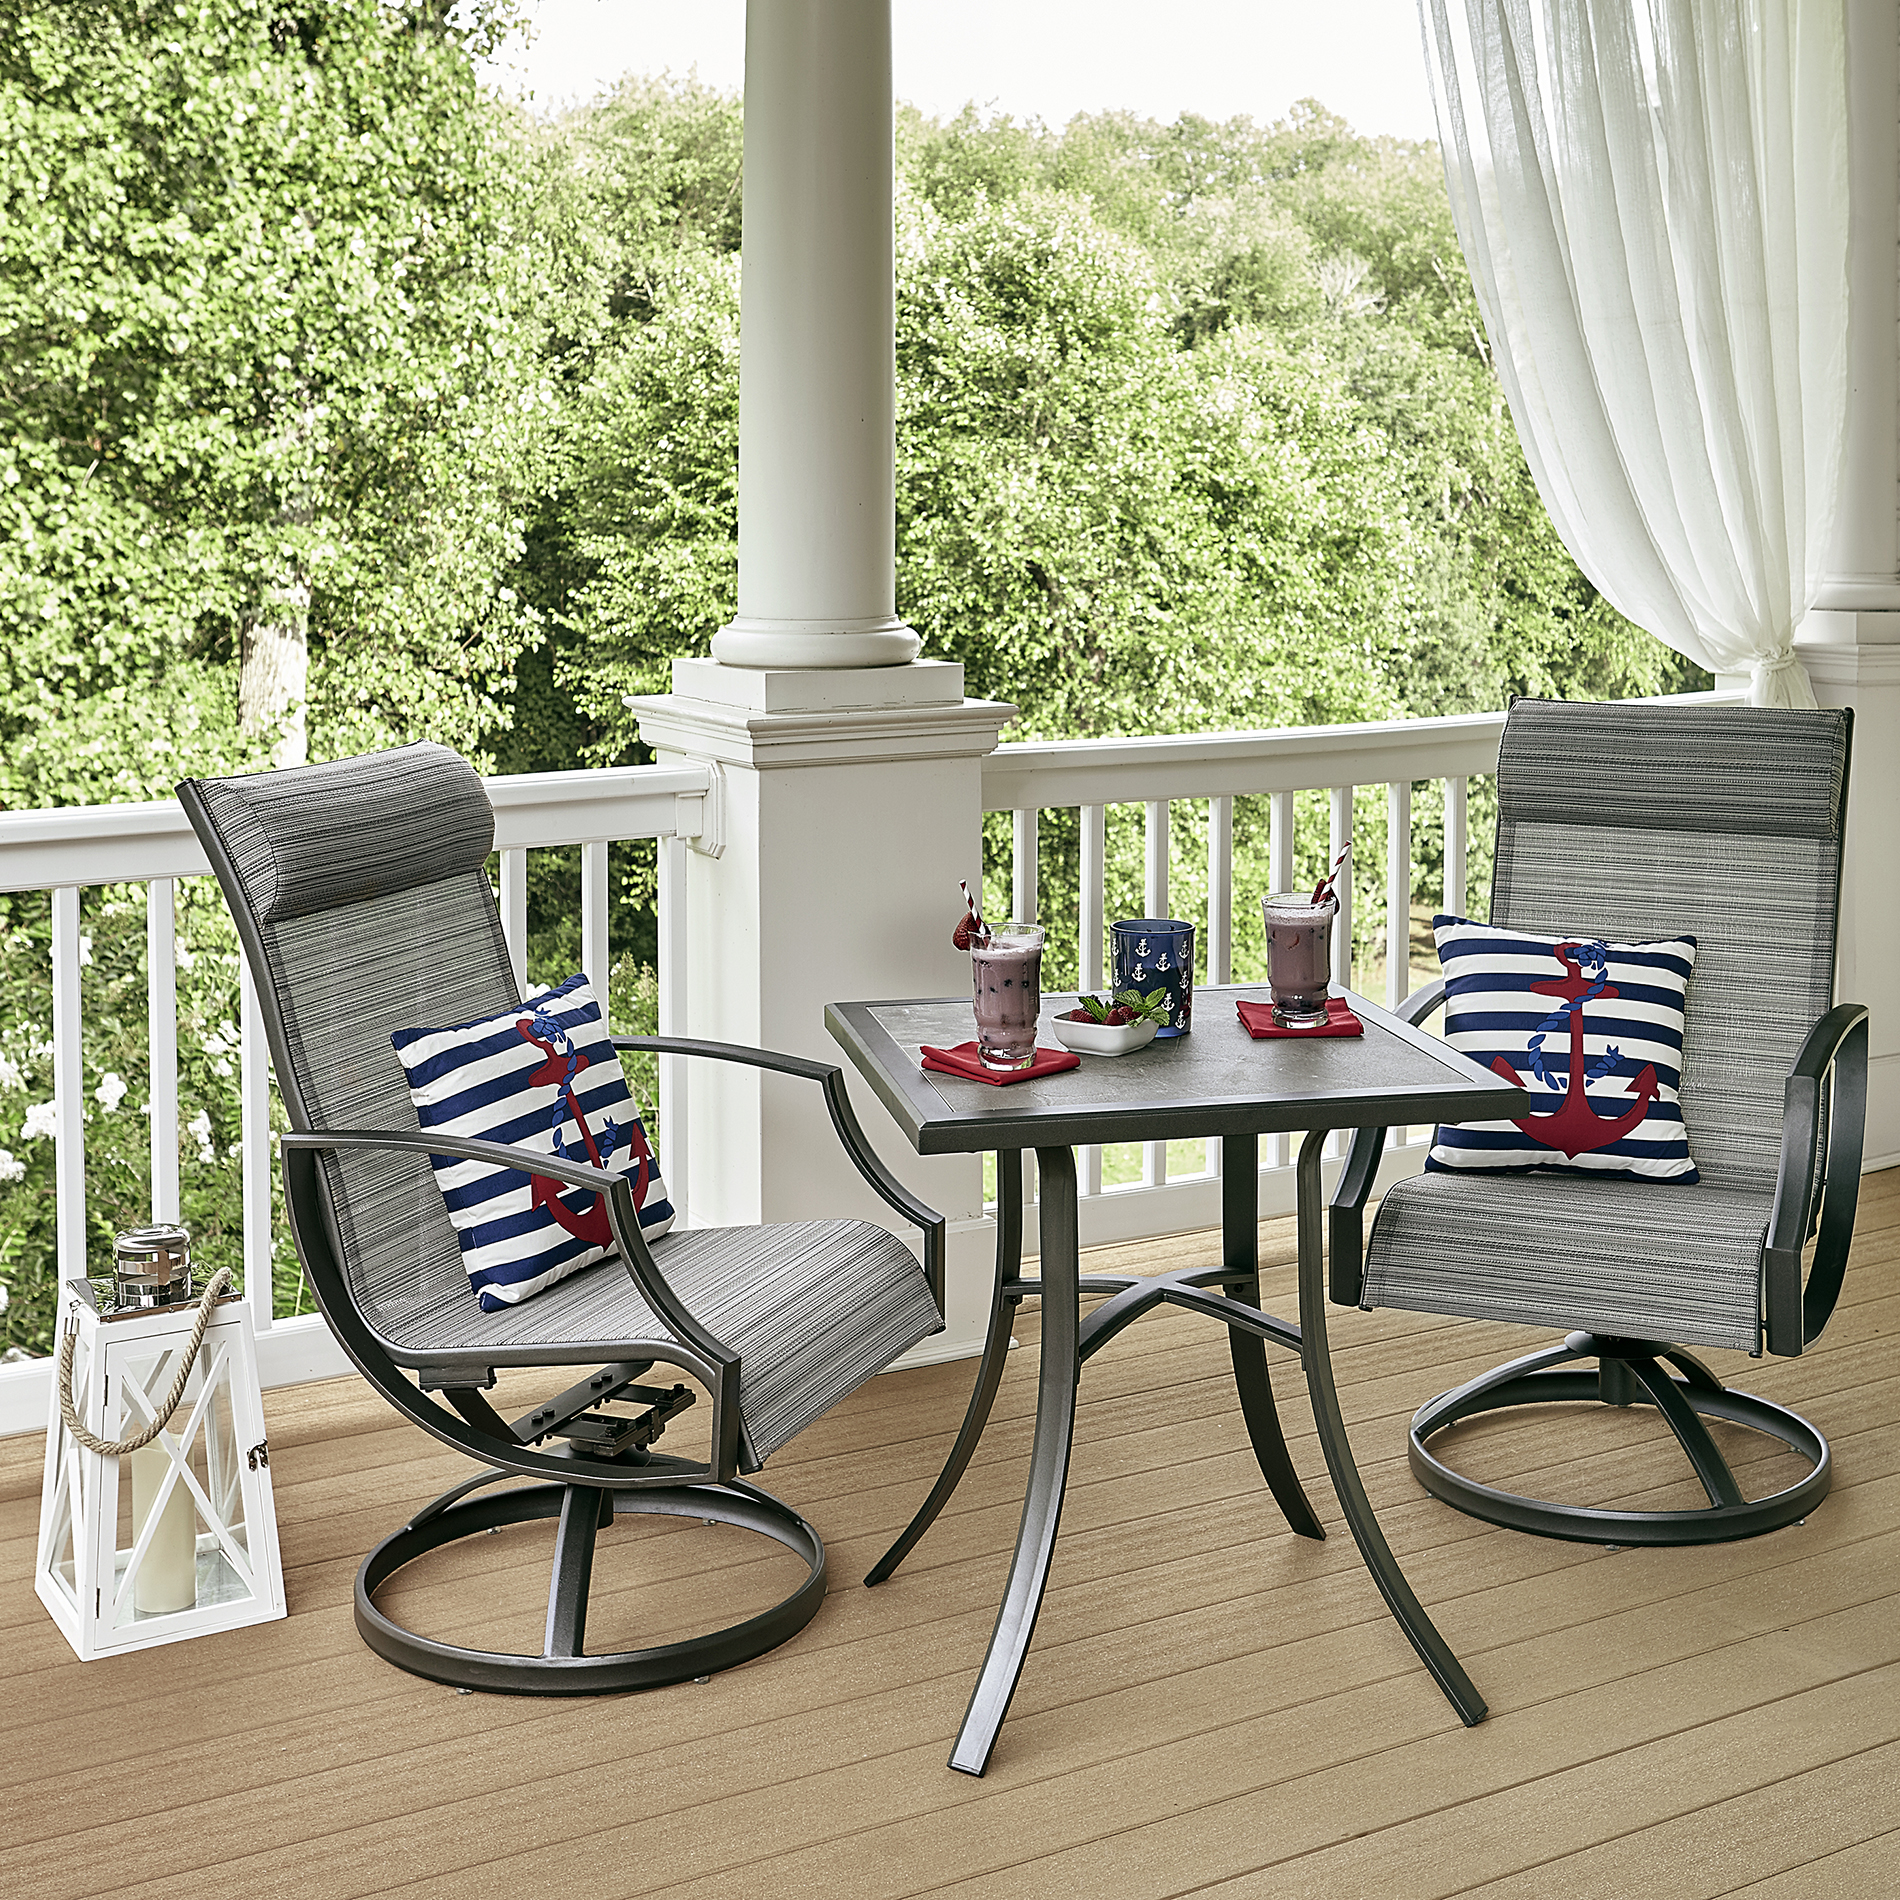 Sutton Rowe Fillmore 3 Piece Bistro Set *Limited Availability